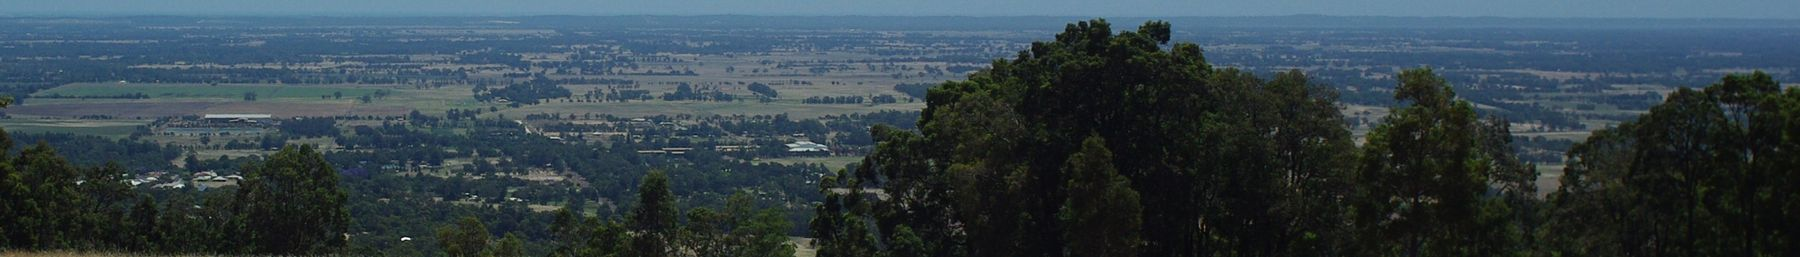 View over Waroona from the Darling scarp